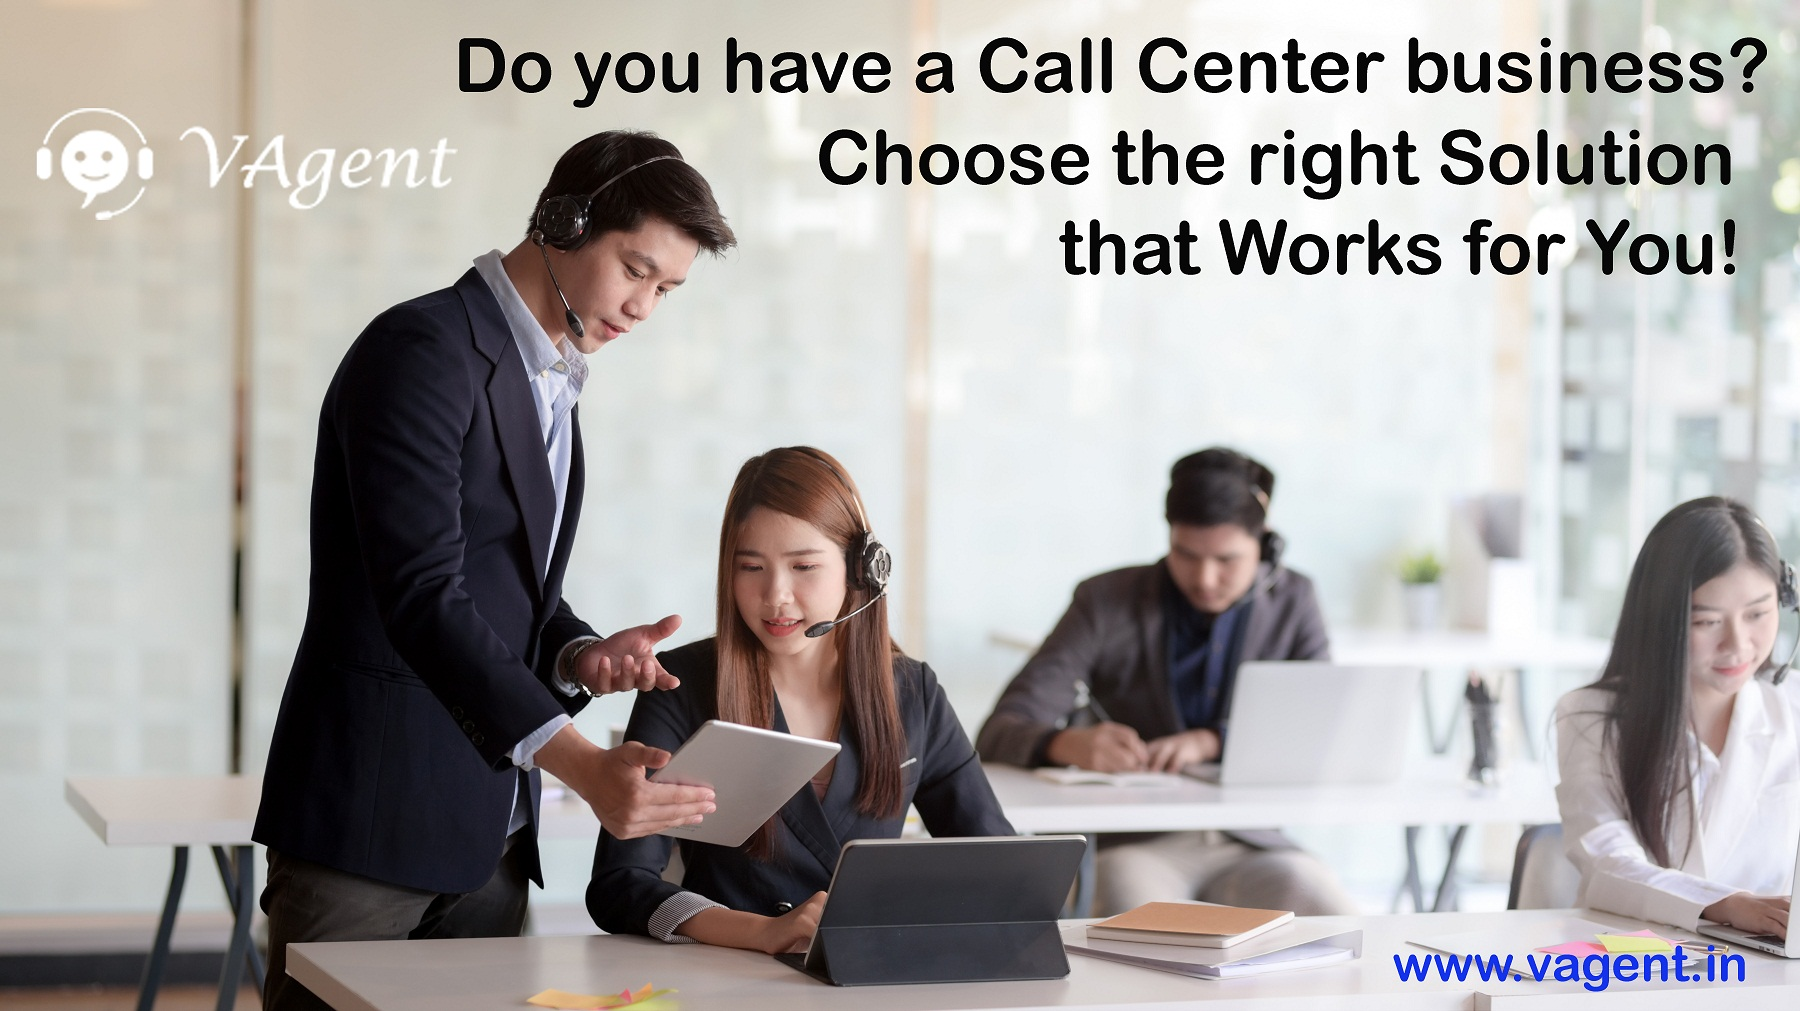 Do you have a Call Center business